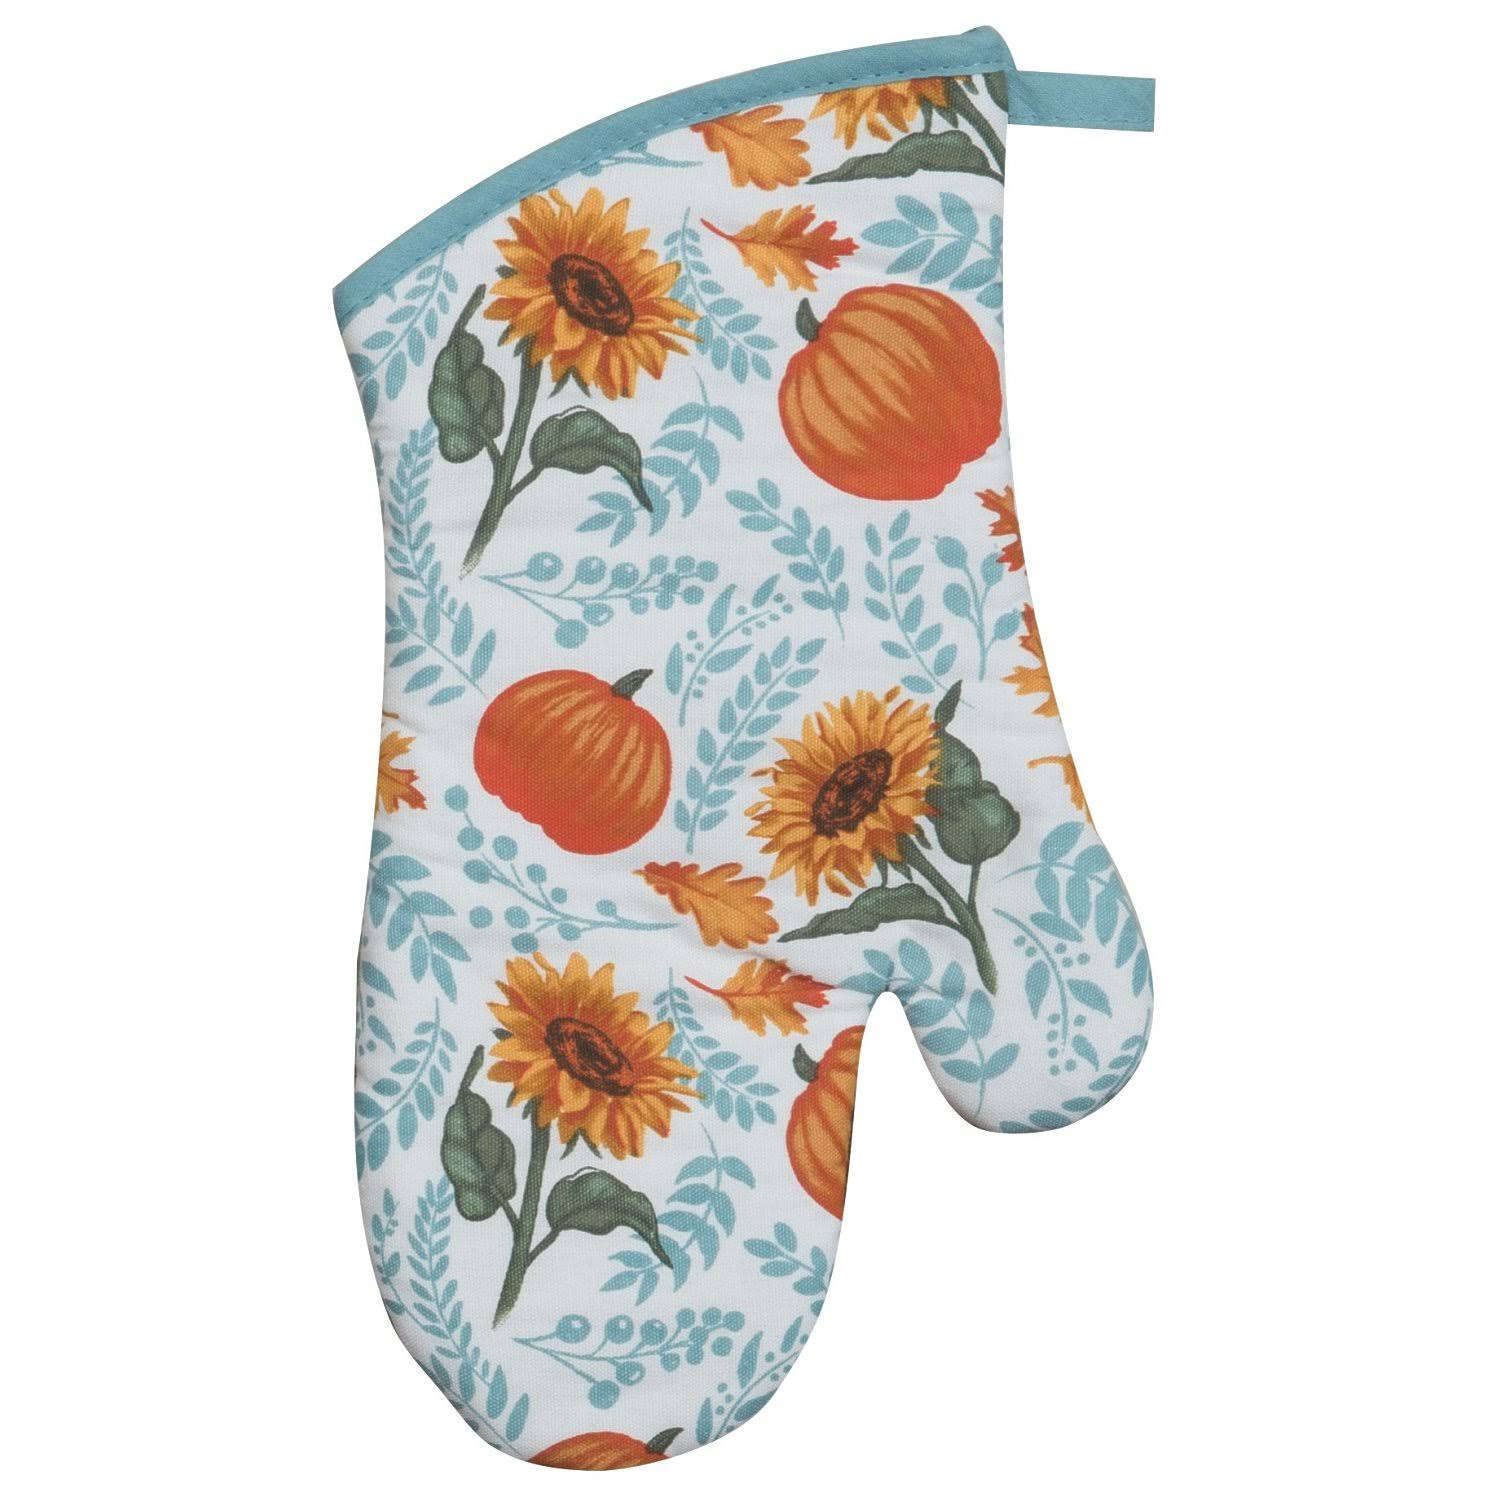 Kay Dee Harvest Delight Pumpkins and Sunflowers Kitchen Oven Mitt